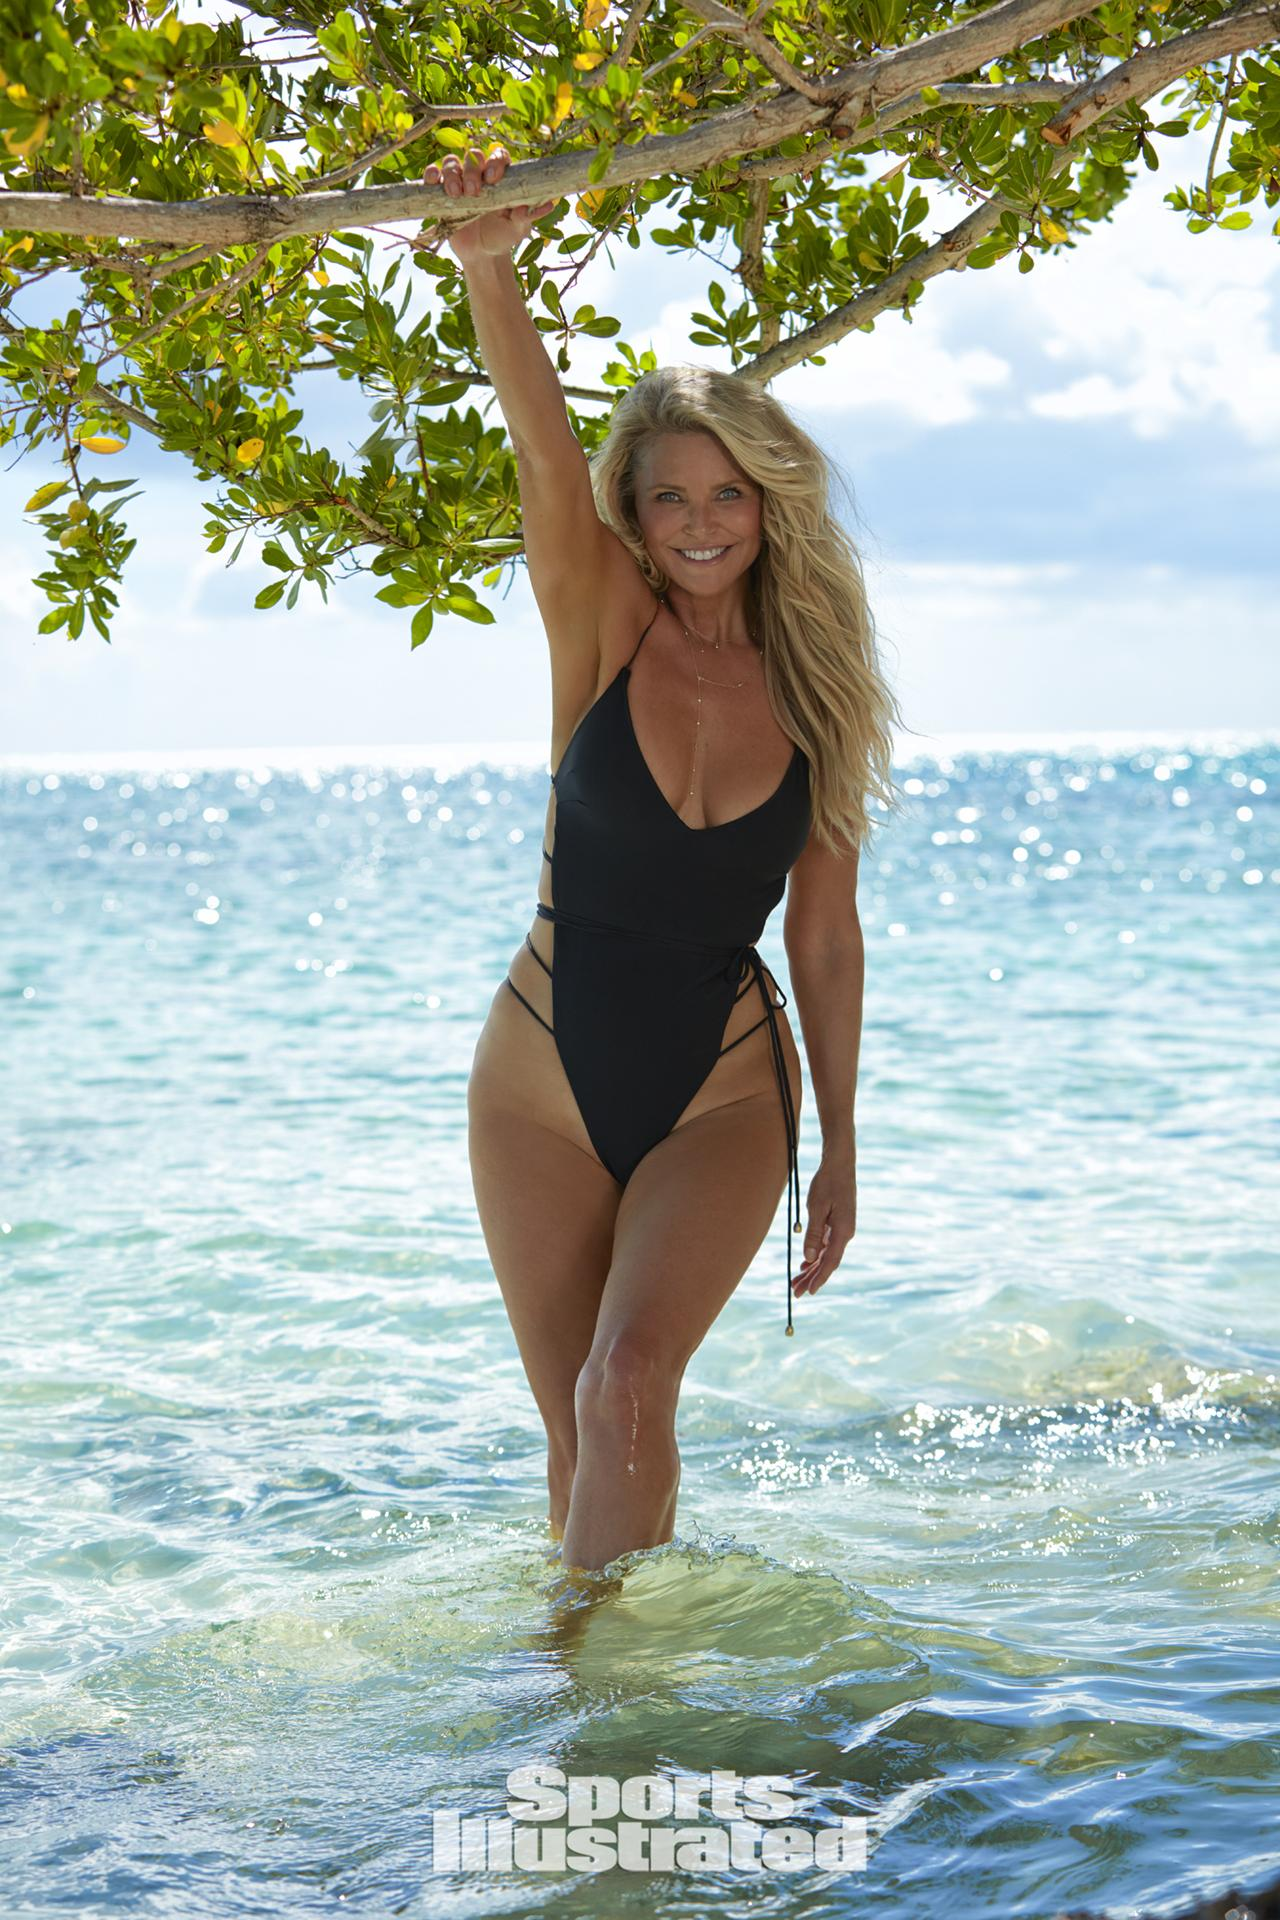 Christie Brinkley Posed for the 2017 'Sports Illustrated' Swimsuit Issue